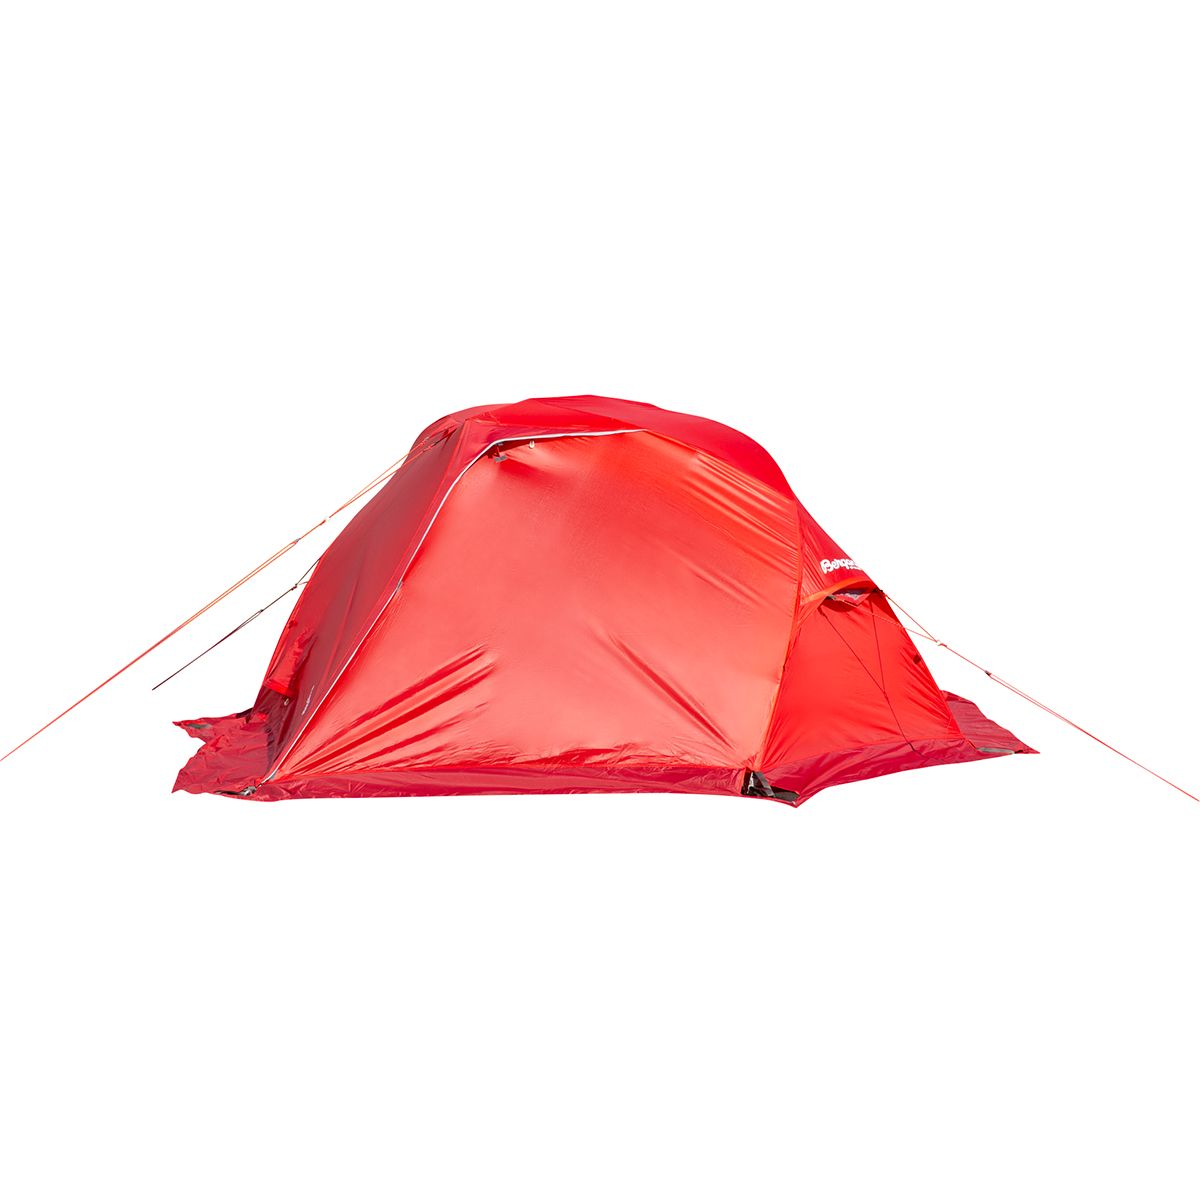 Image of Bergans Helium Expedition Dome 2 Zelt (Rot)